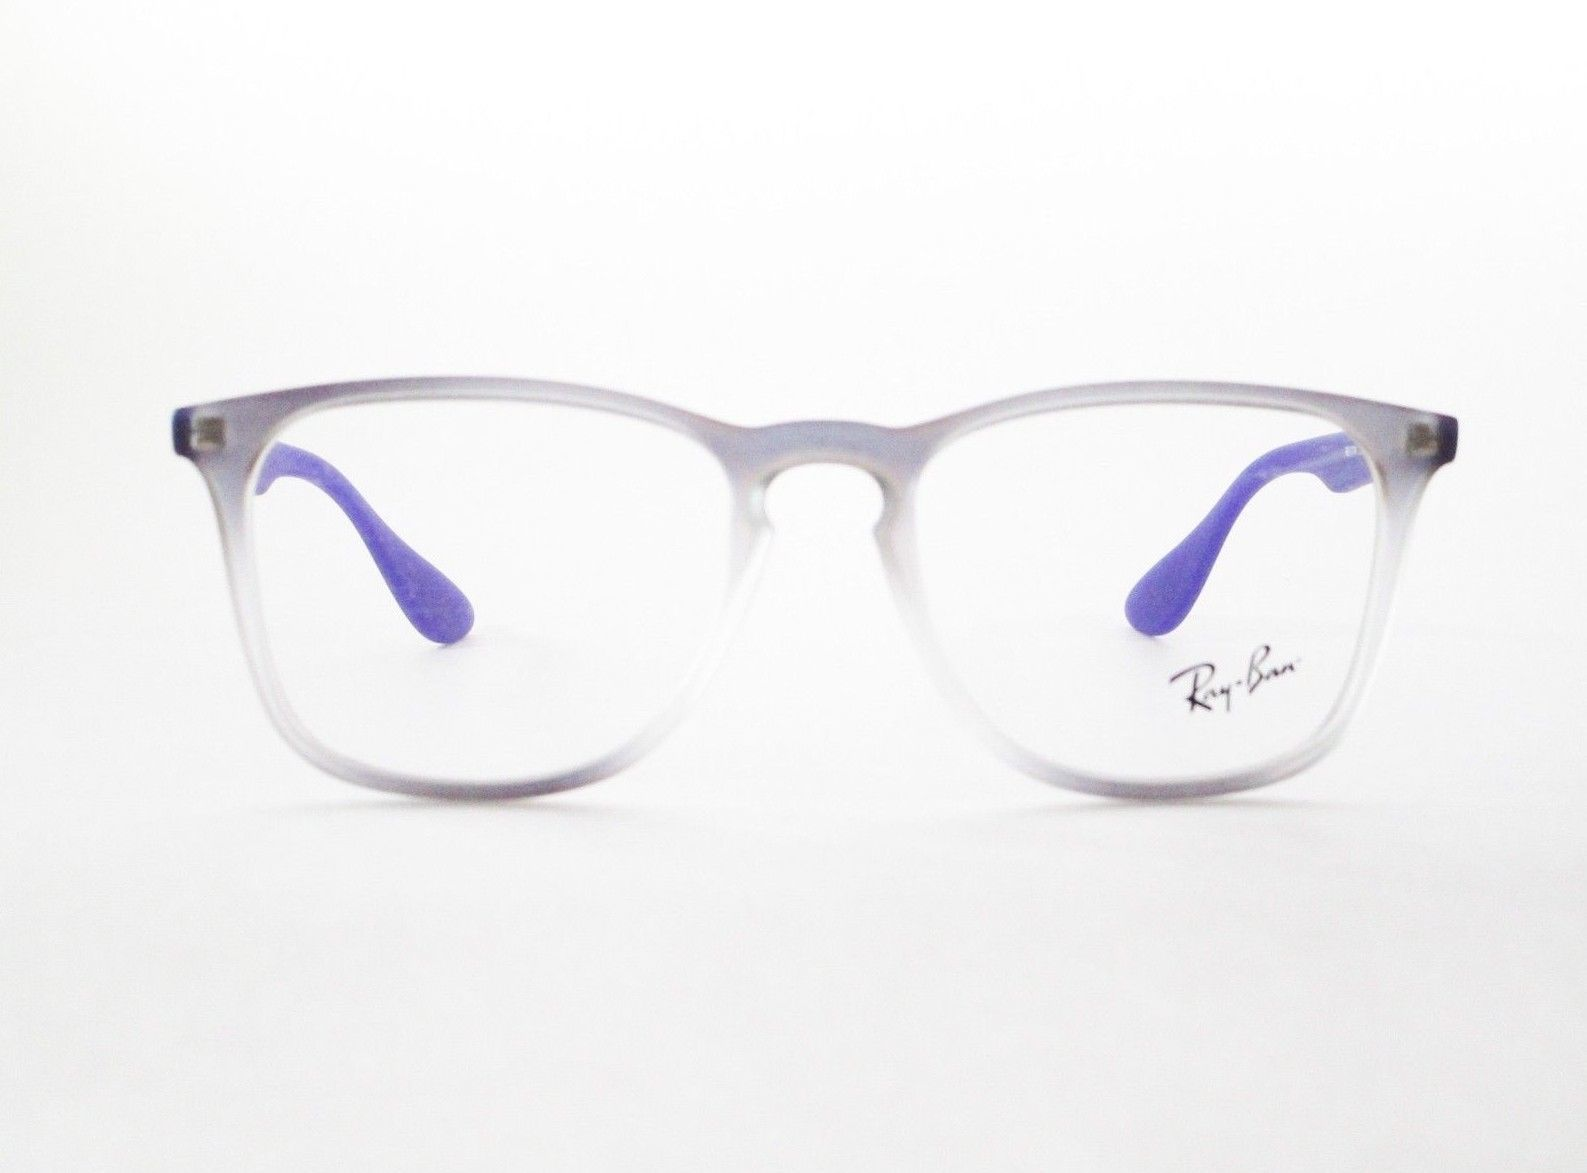 40e0f4f56db RayBan RB 7074 5600 Optical Frame Round Violet Iridescent Glasses